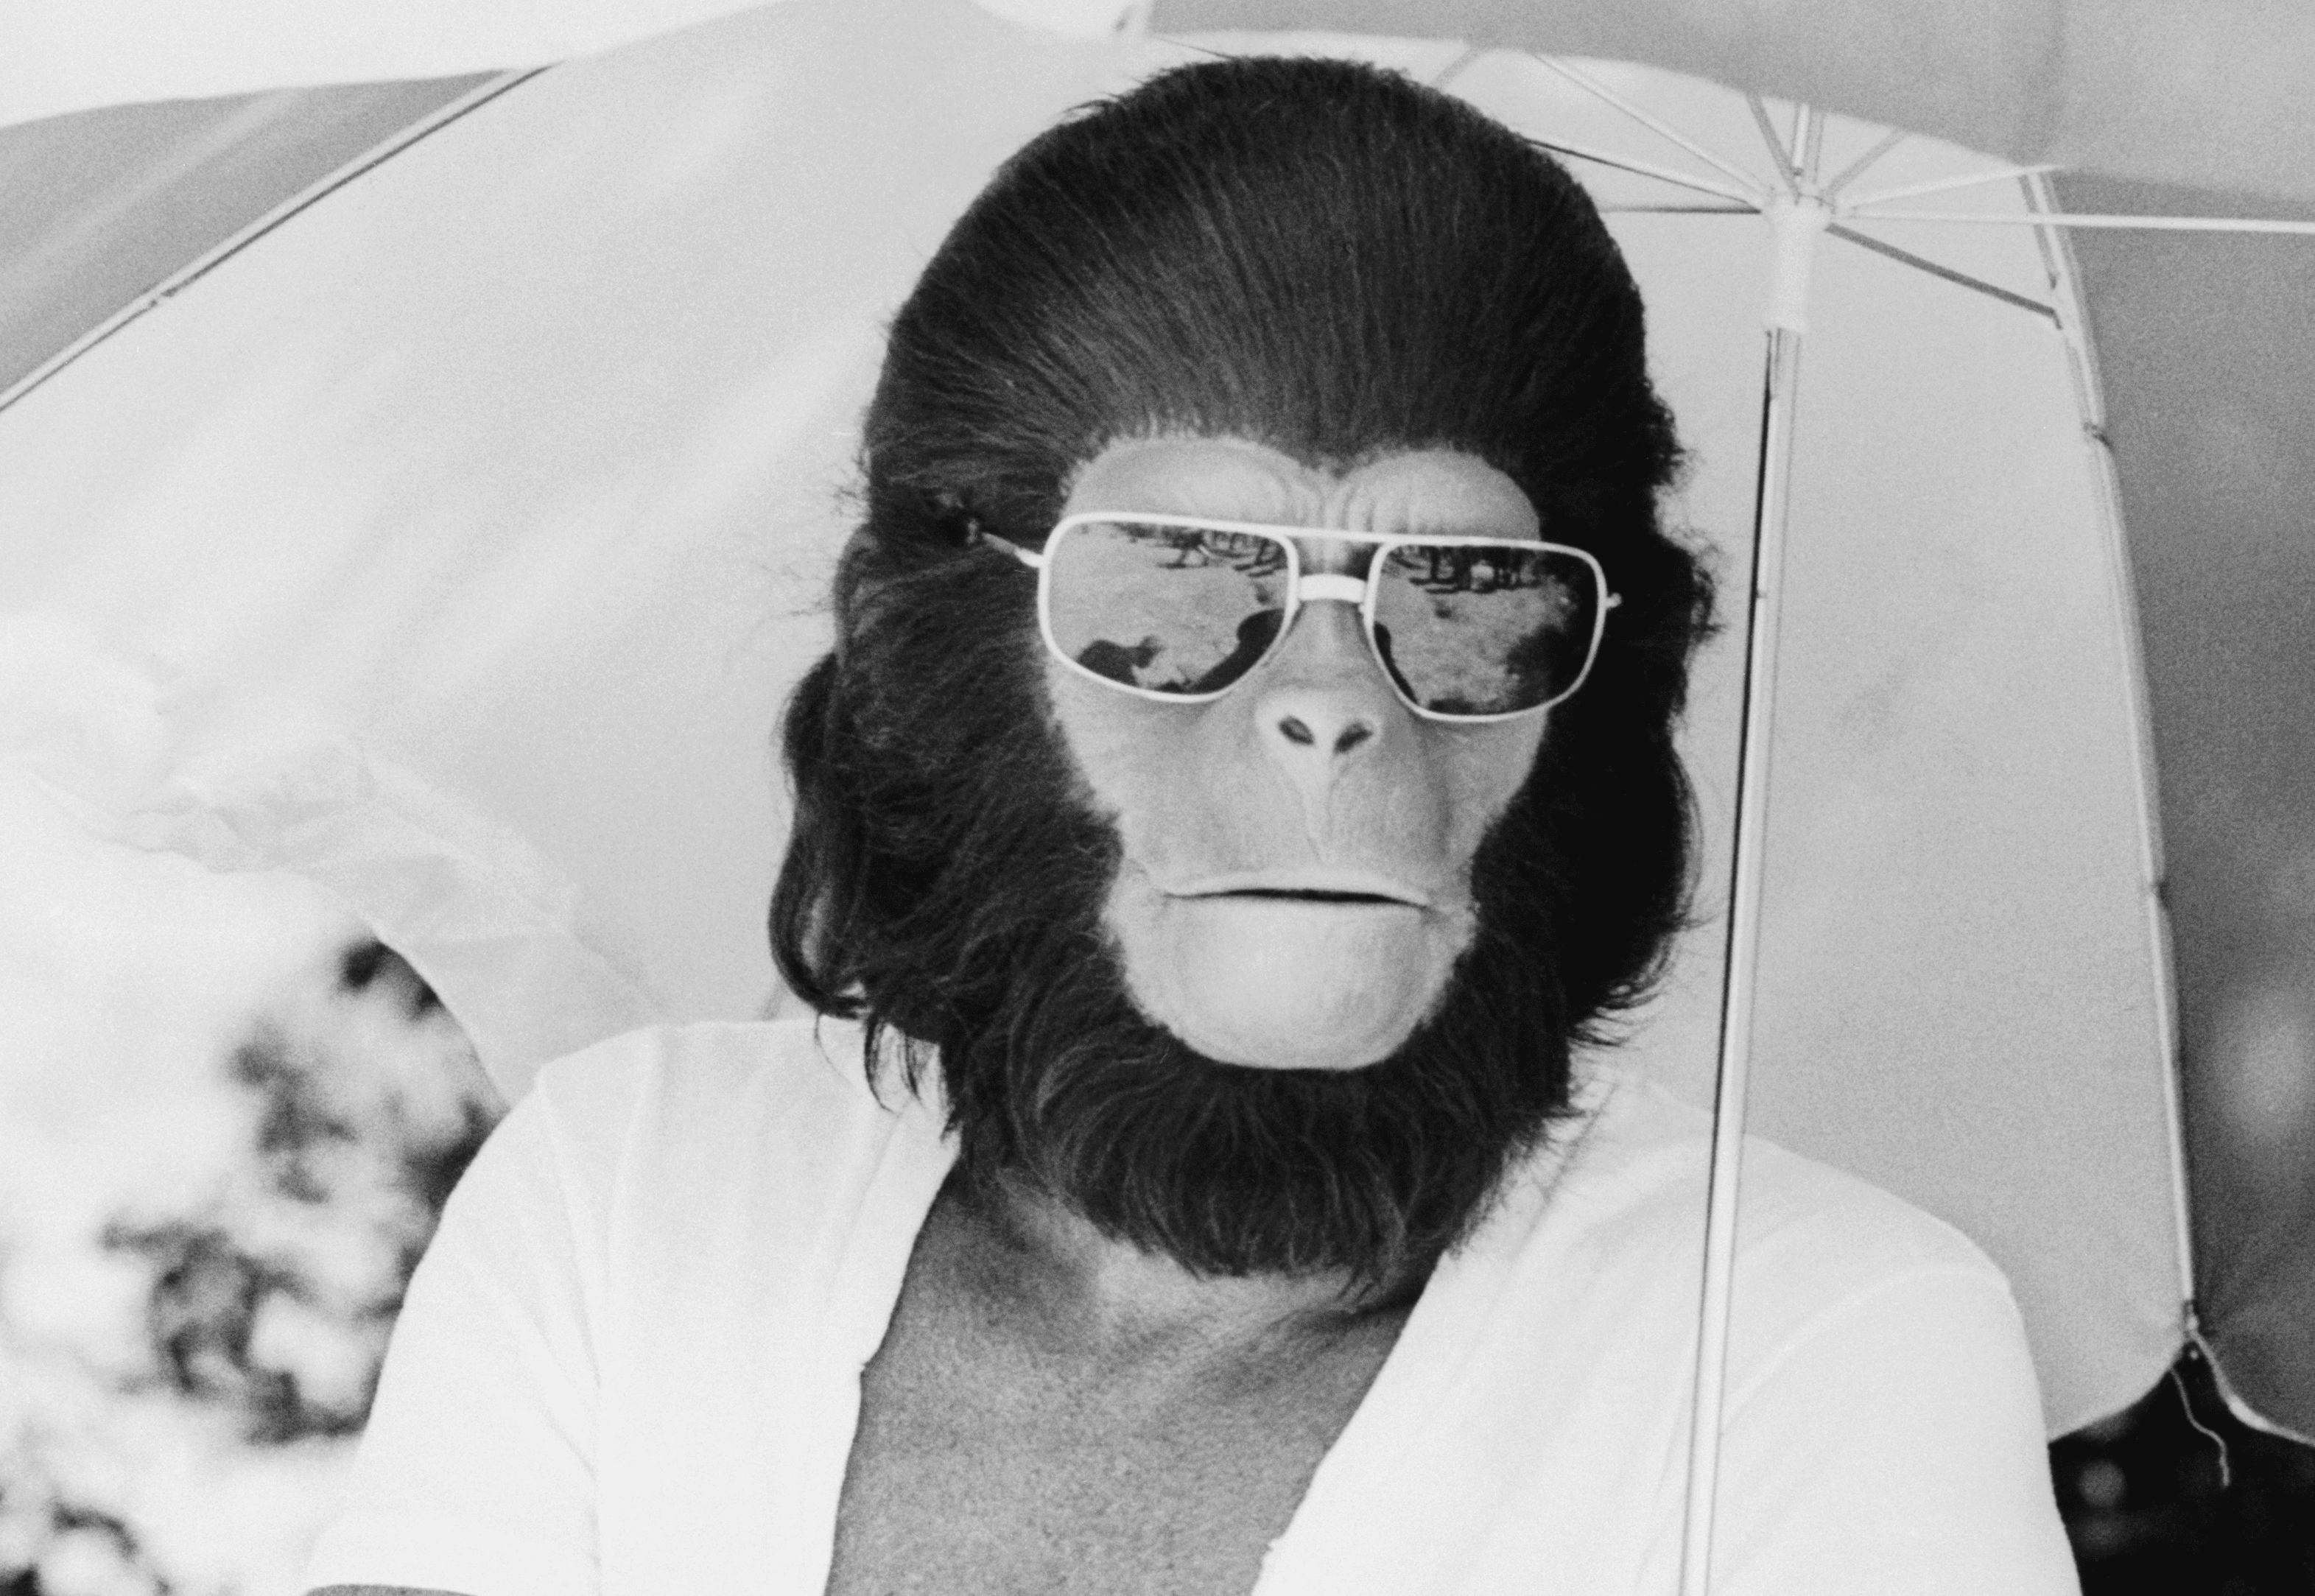 Roddy McDowall, Actor and Planet of the Apes Star